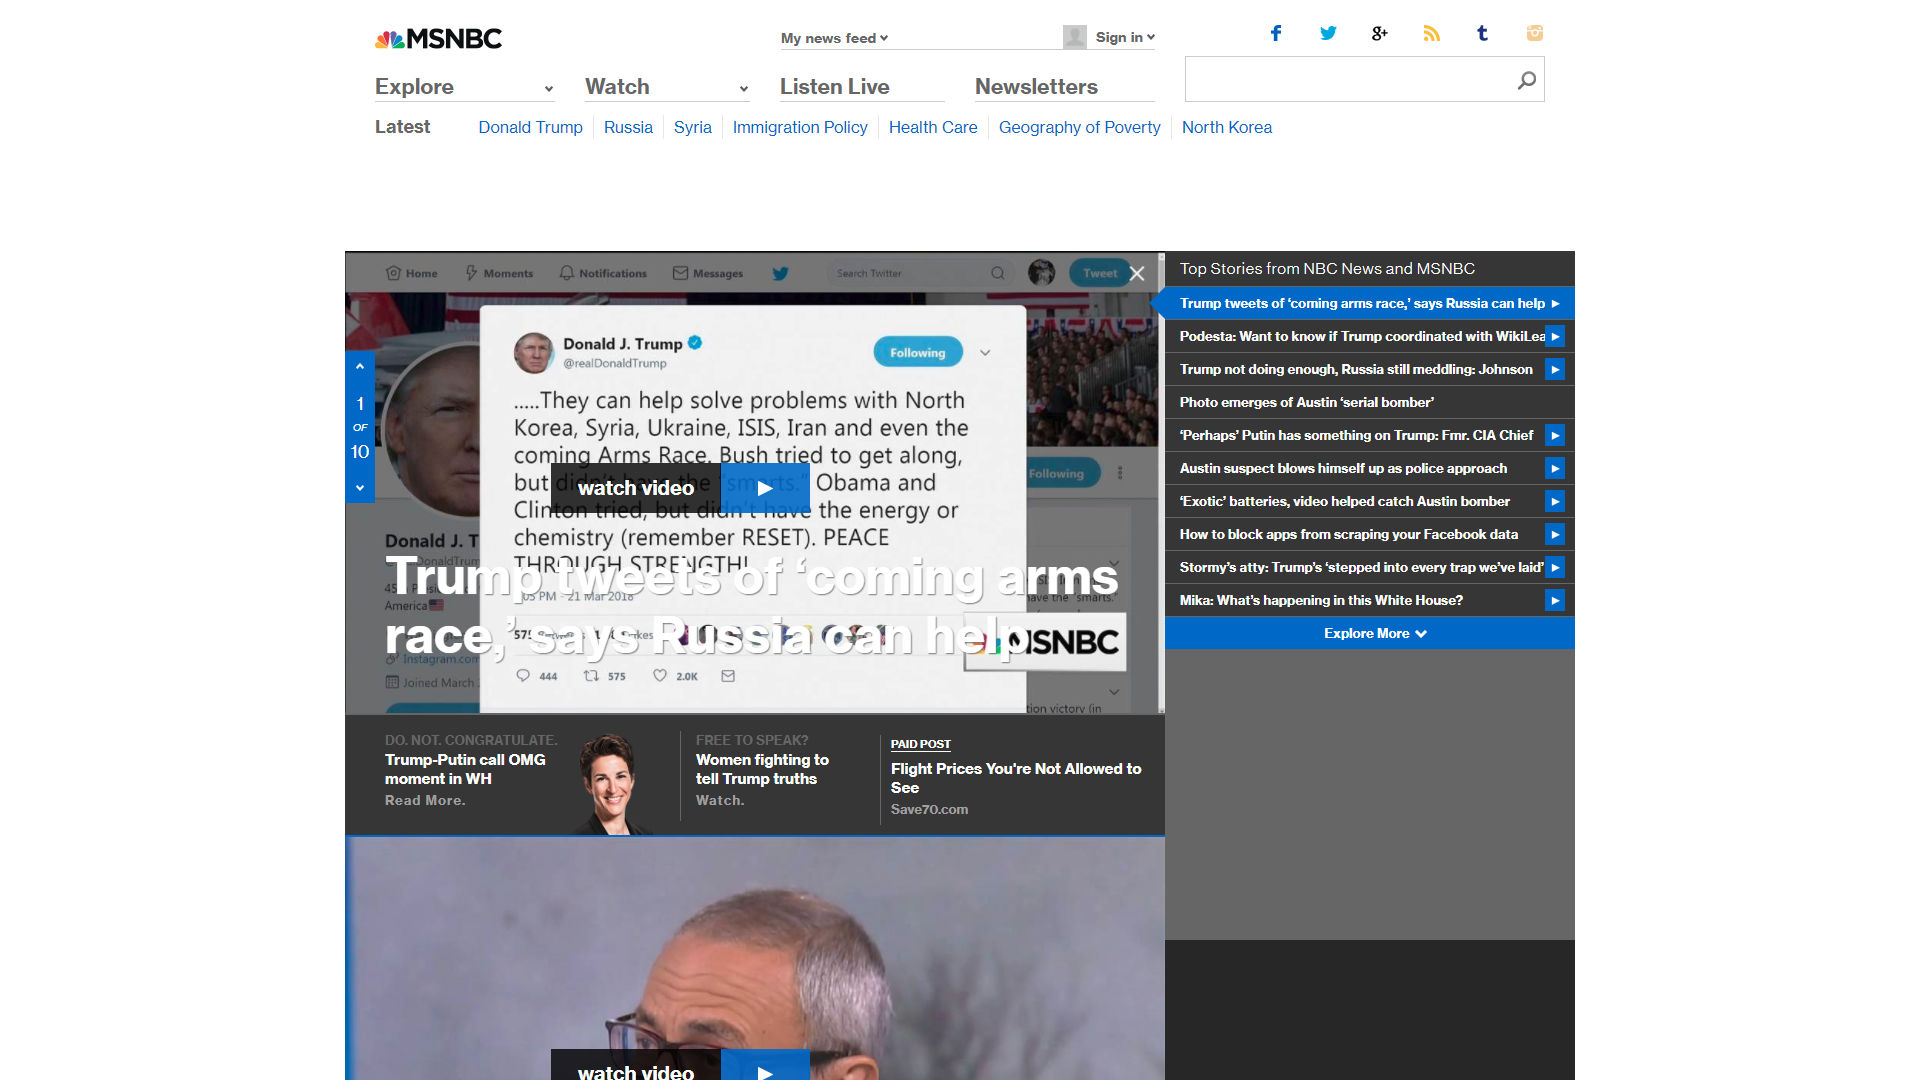 Old MSNBC Home Page